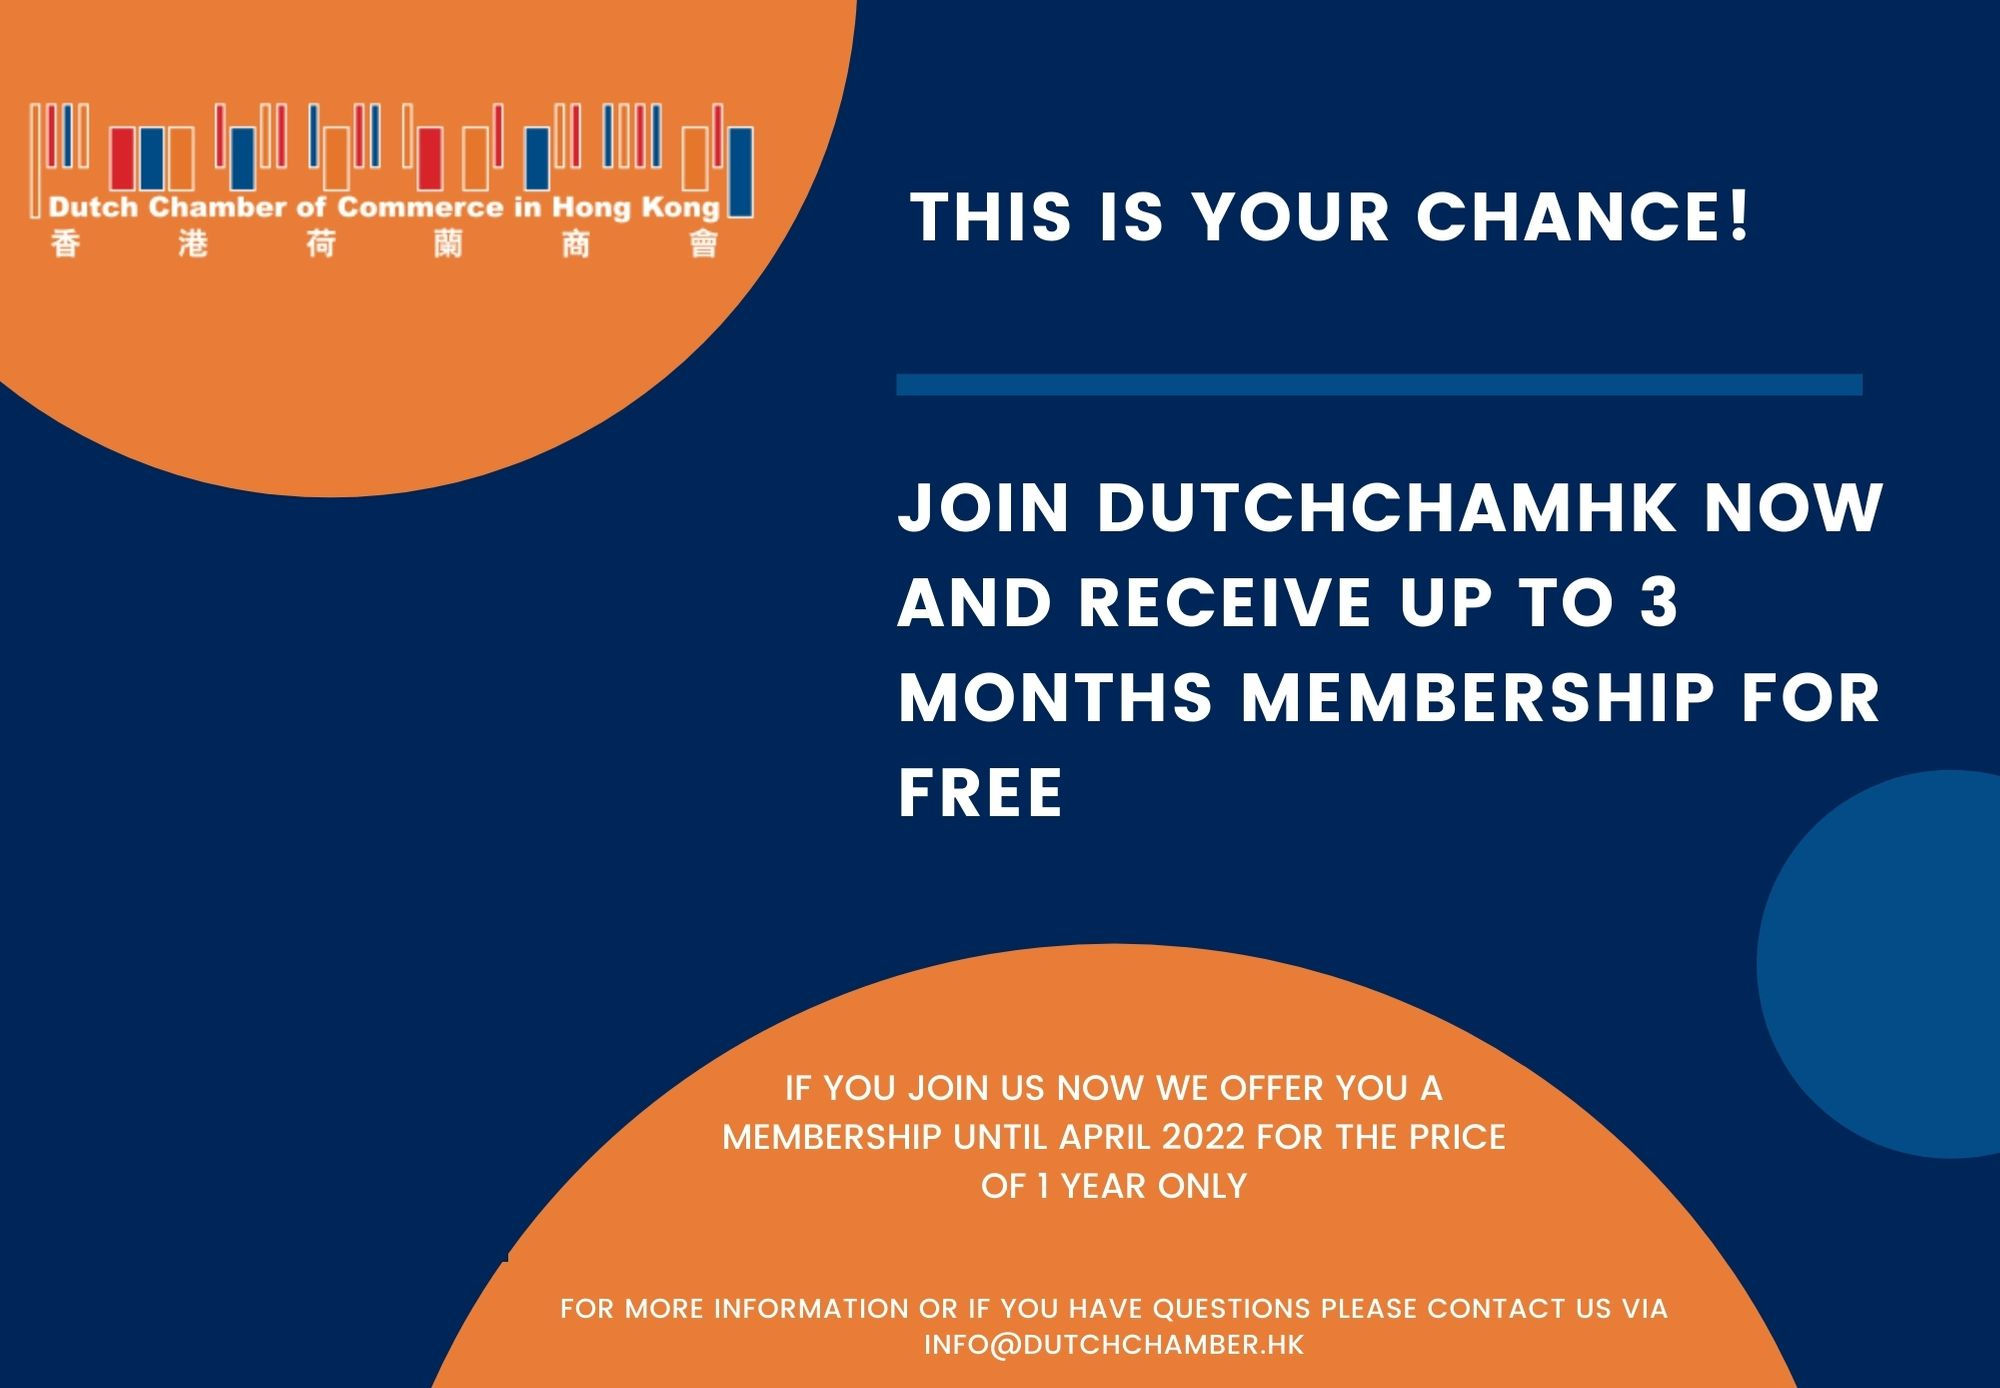 JOIN DUTCHCHAM HK NOW AND RECEIVE UP TO 1⁄2 YEAR MEMBERSHIP FOR FREE